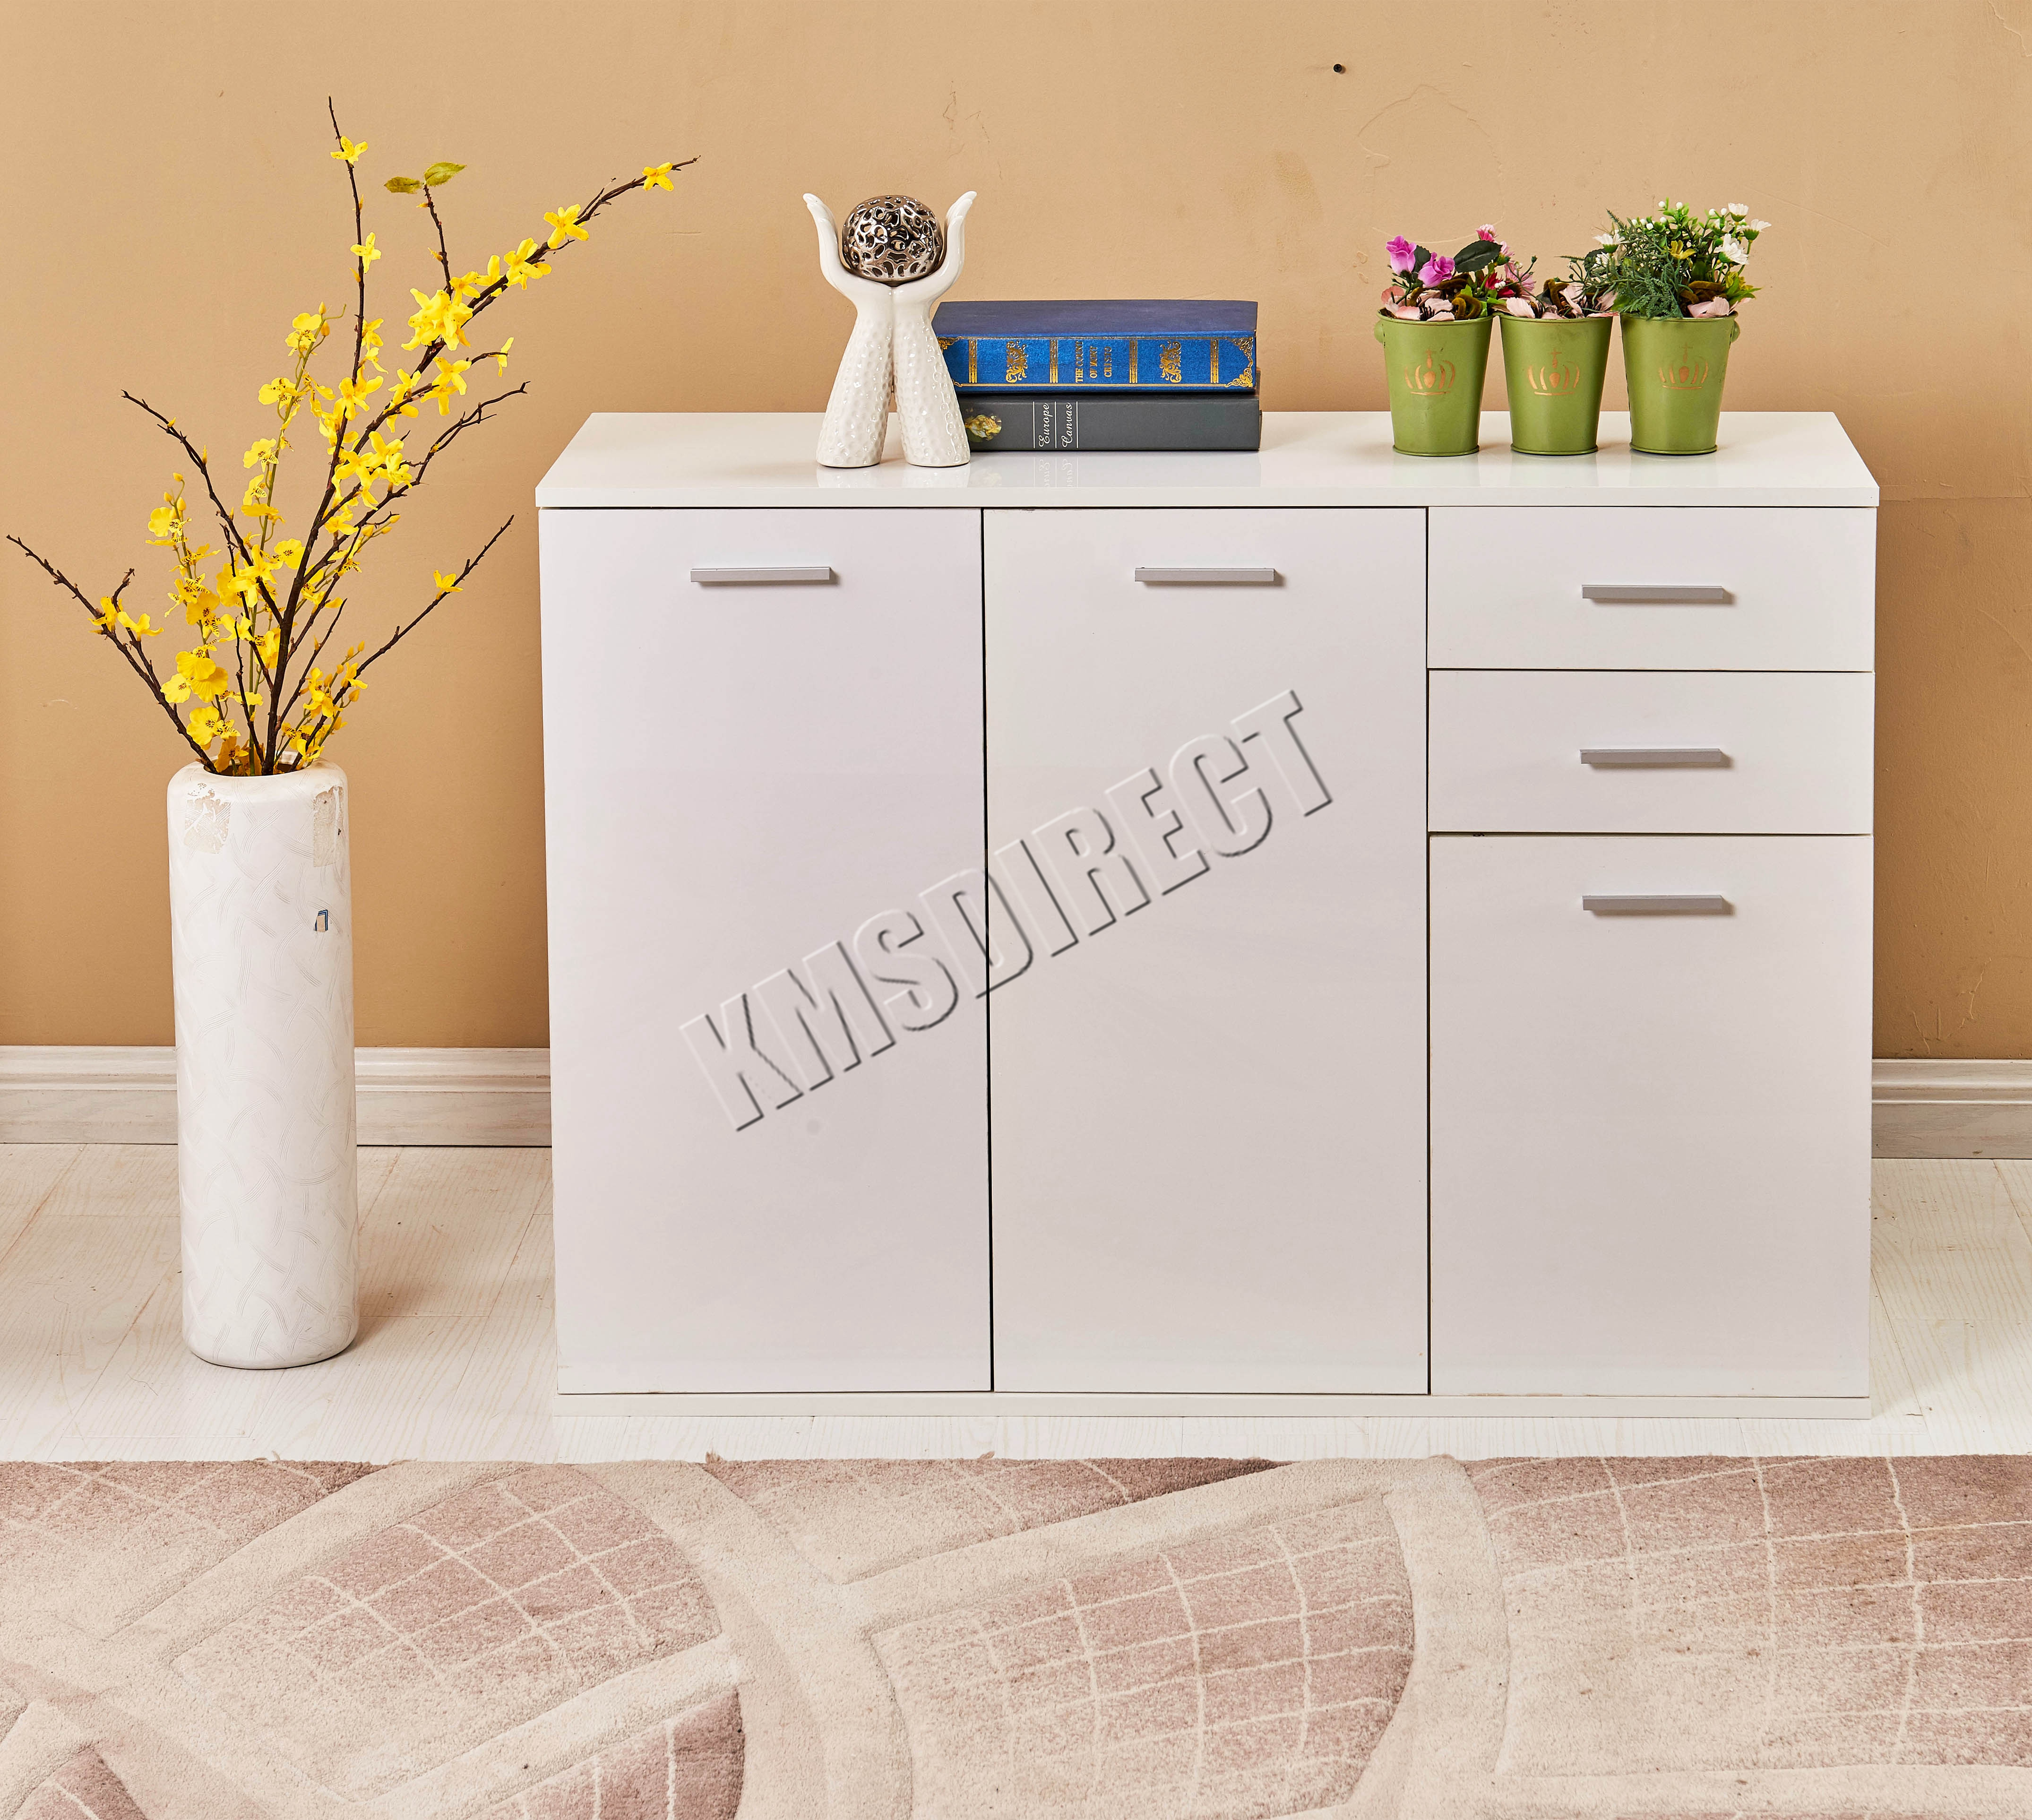 foxhunter white high gloss cabinet unit sideboard  drawers   - foxhunterwhitehighglosscabinetunitsideboard